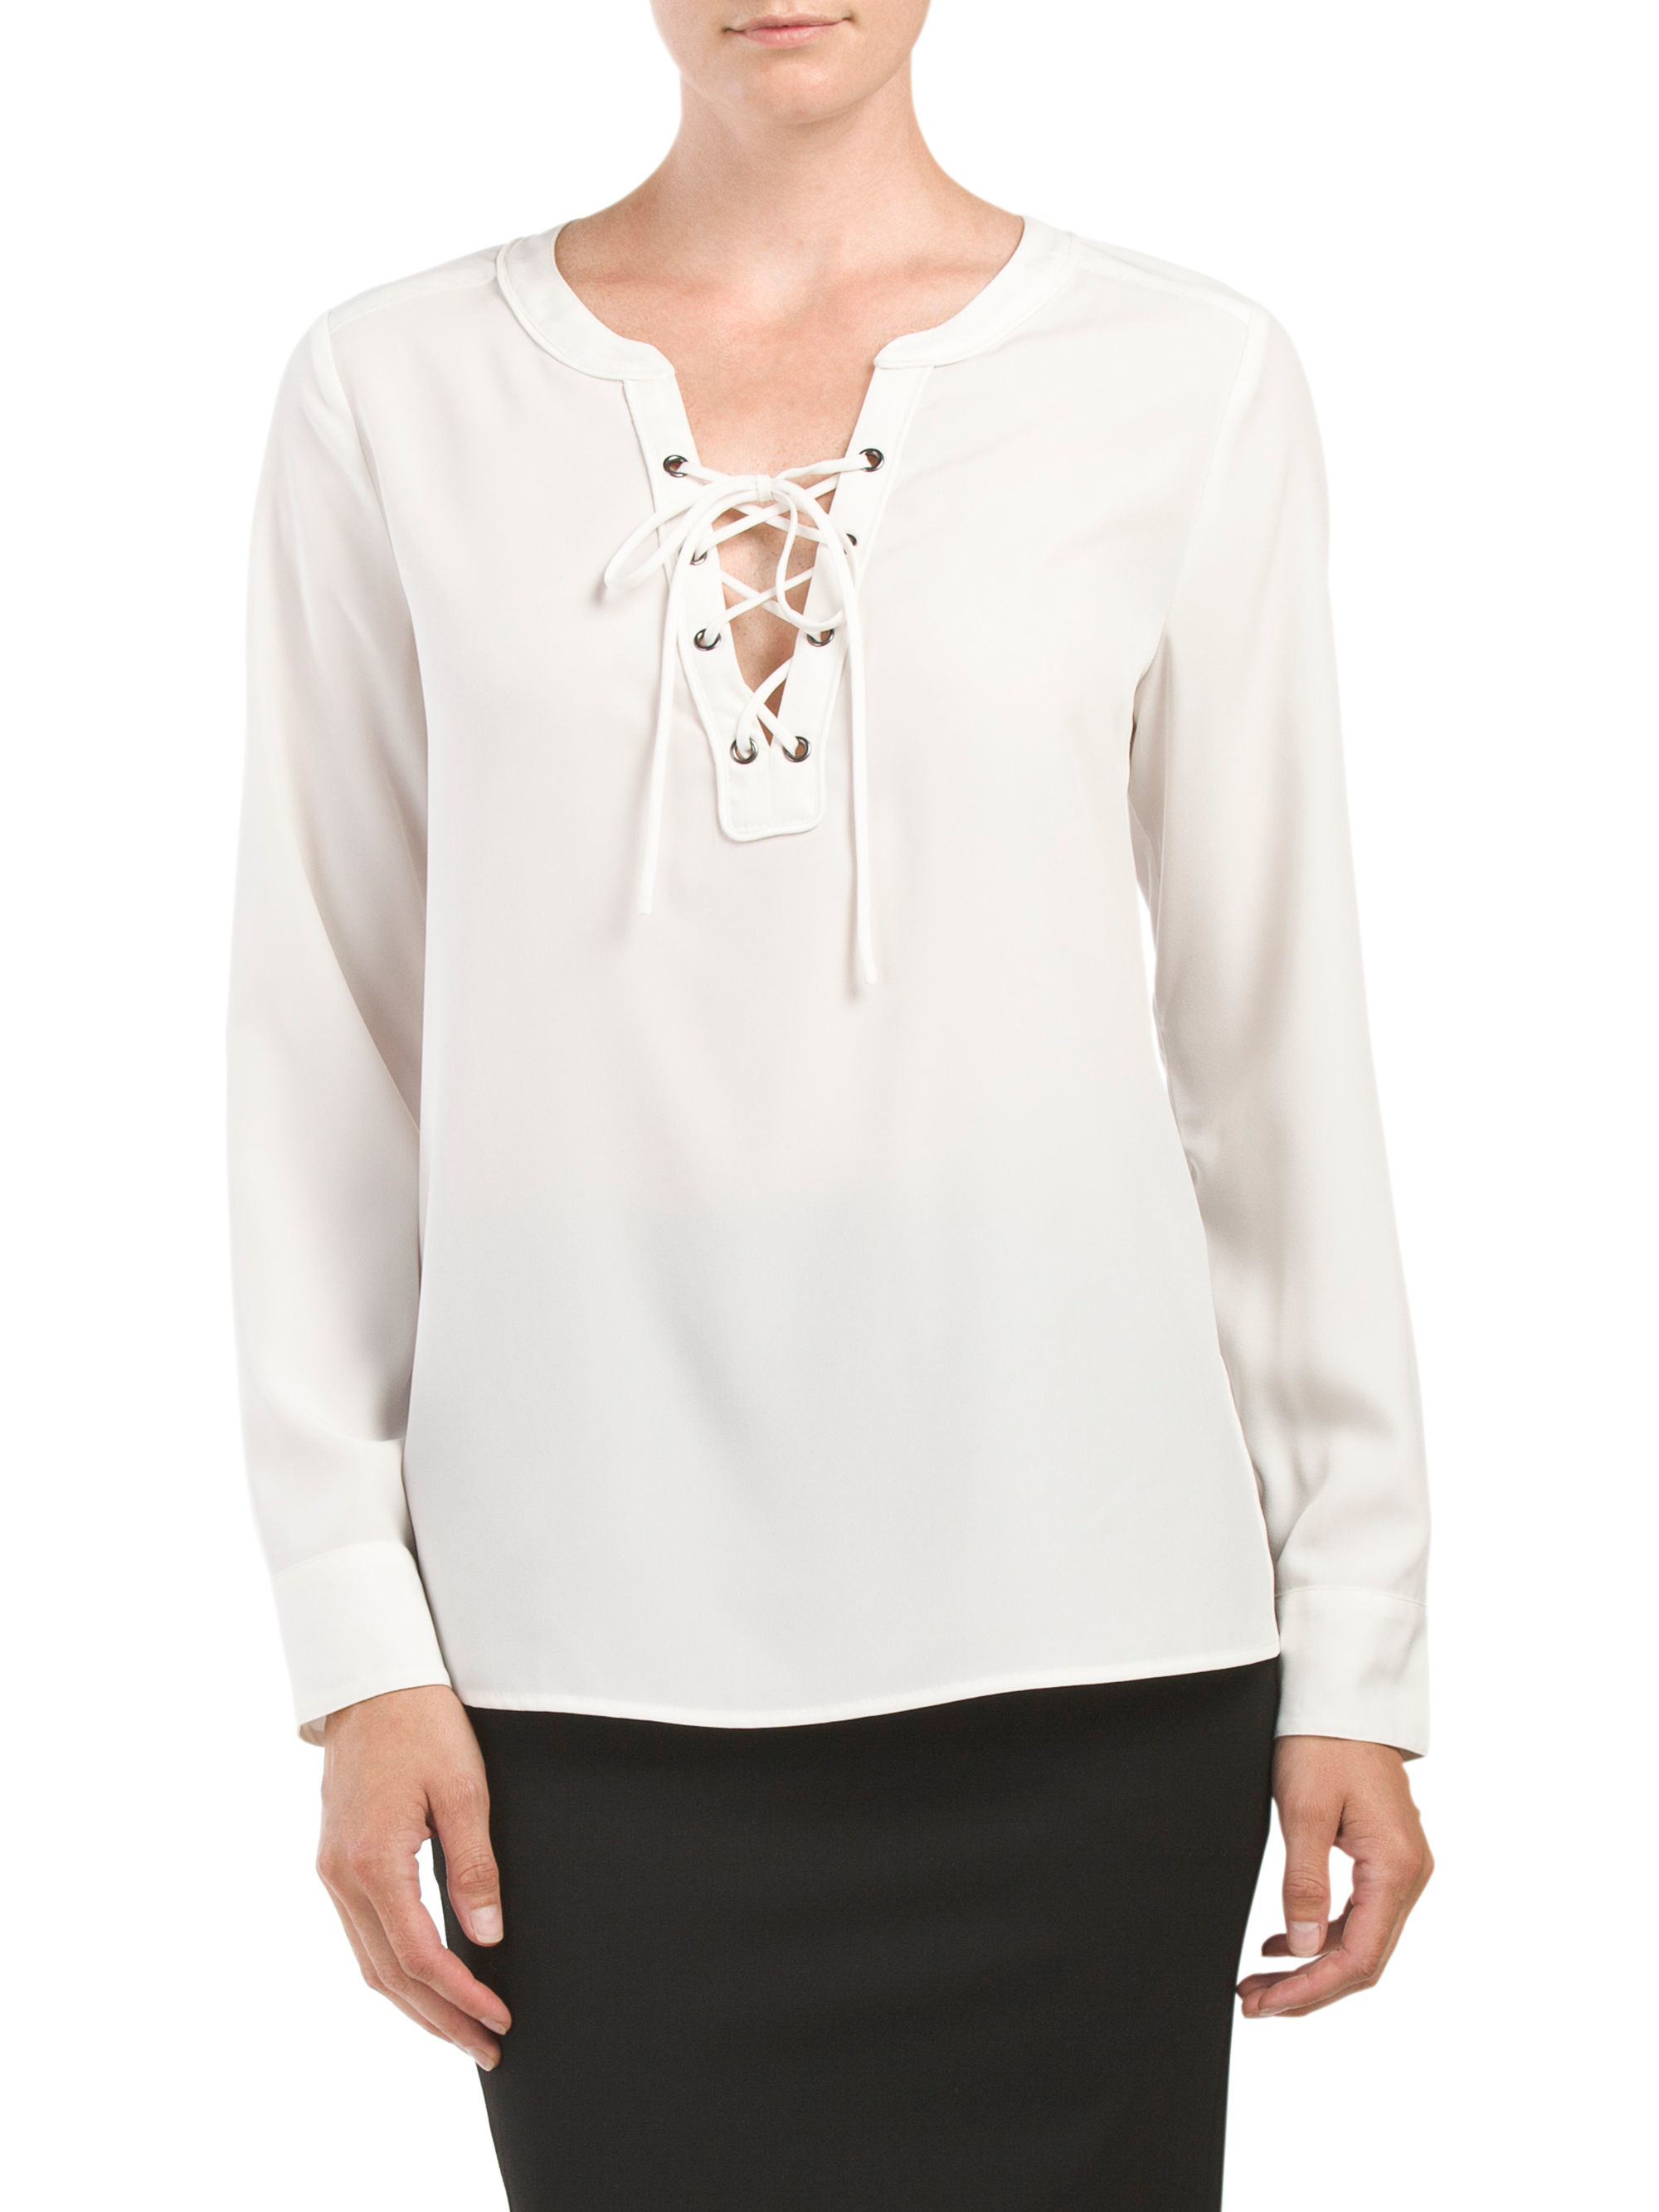 Tj maxx lace up cafe top in white lyst for Tj maxx t shirts